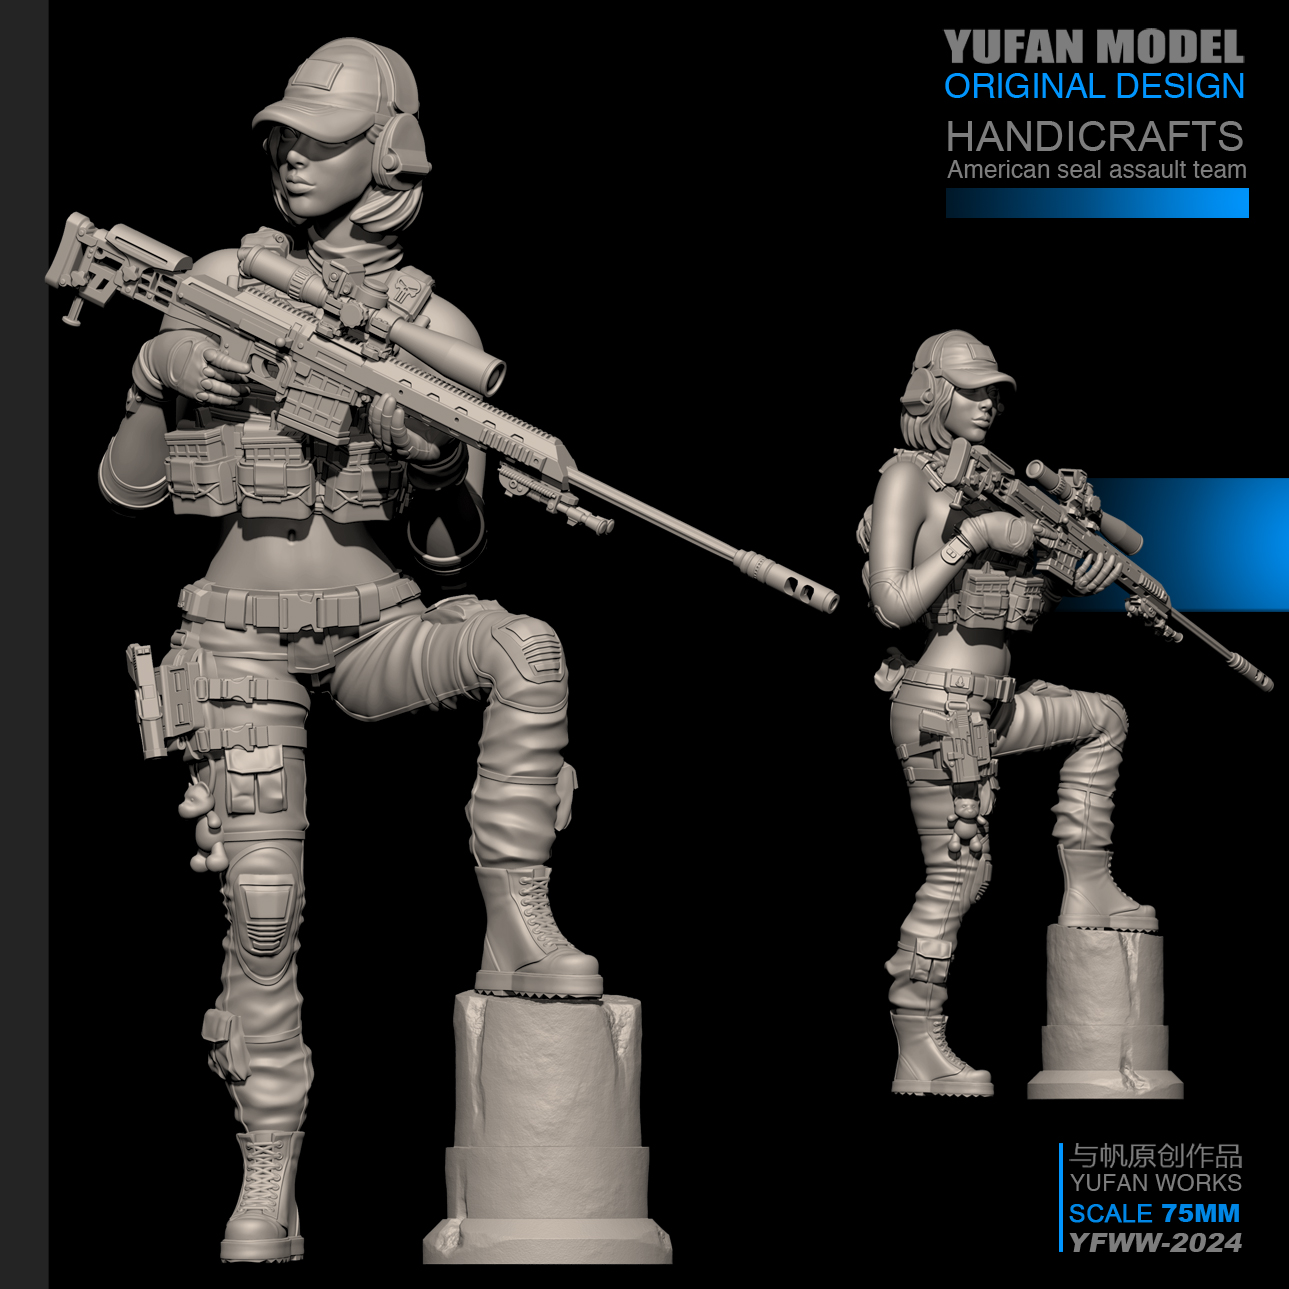 YUFan Model 1/24 Female Sniper Resin Soldier Self-assembled (75mm)YFWW-2024